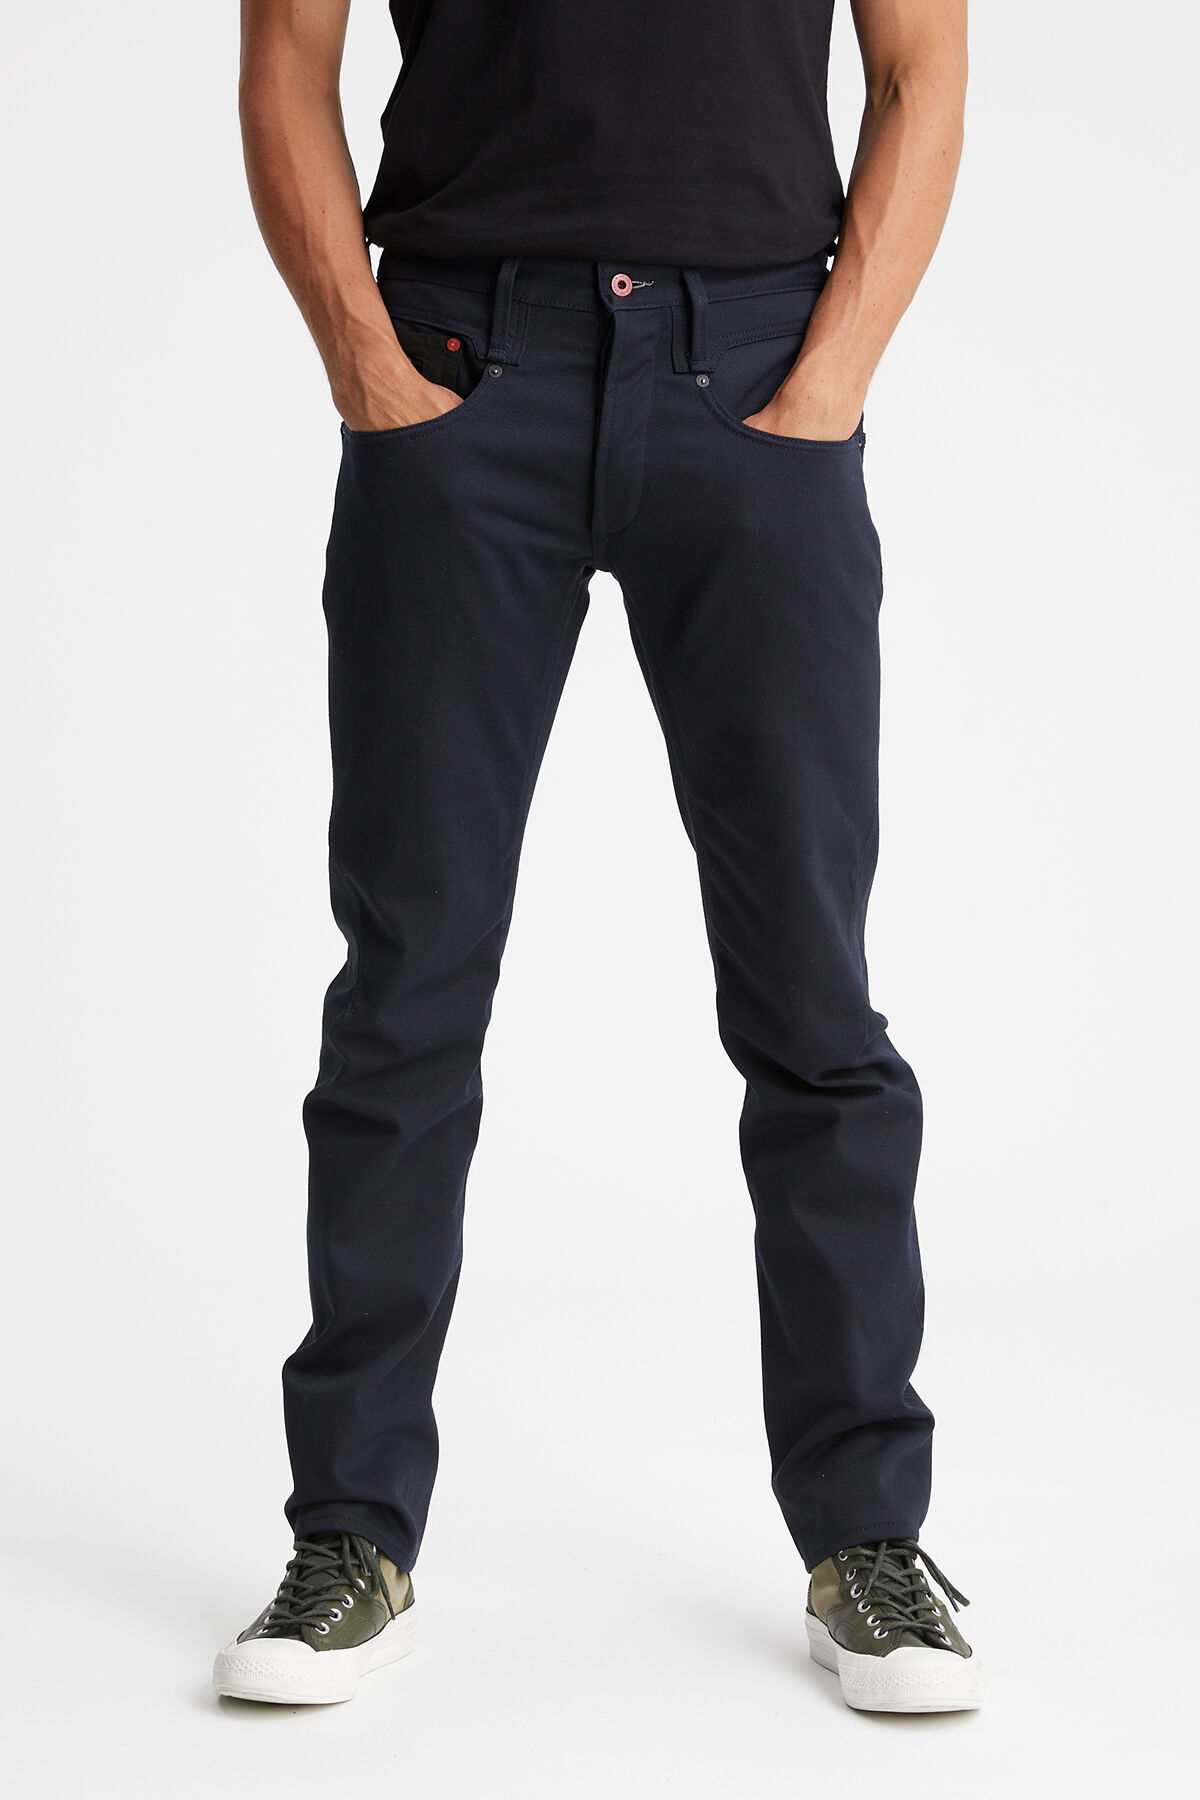 CROSSBACK Virgin indigo denim mix - Carrot Fit